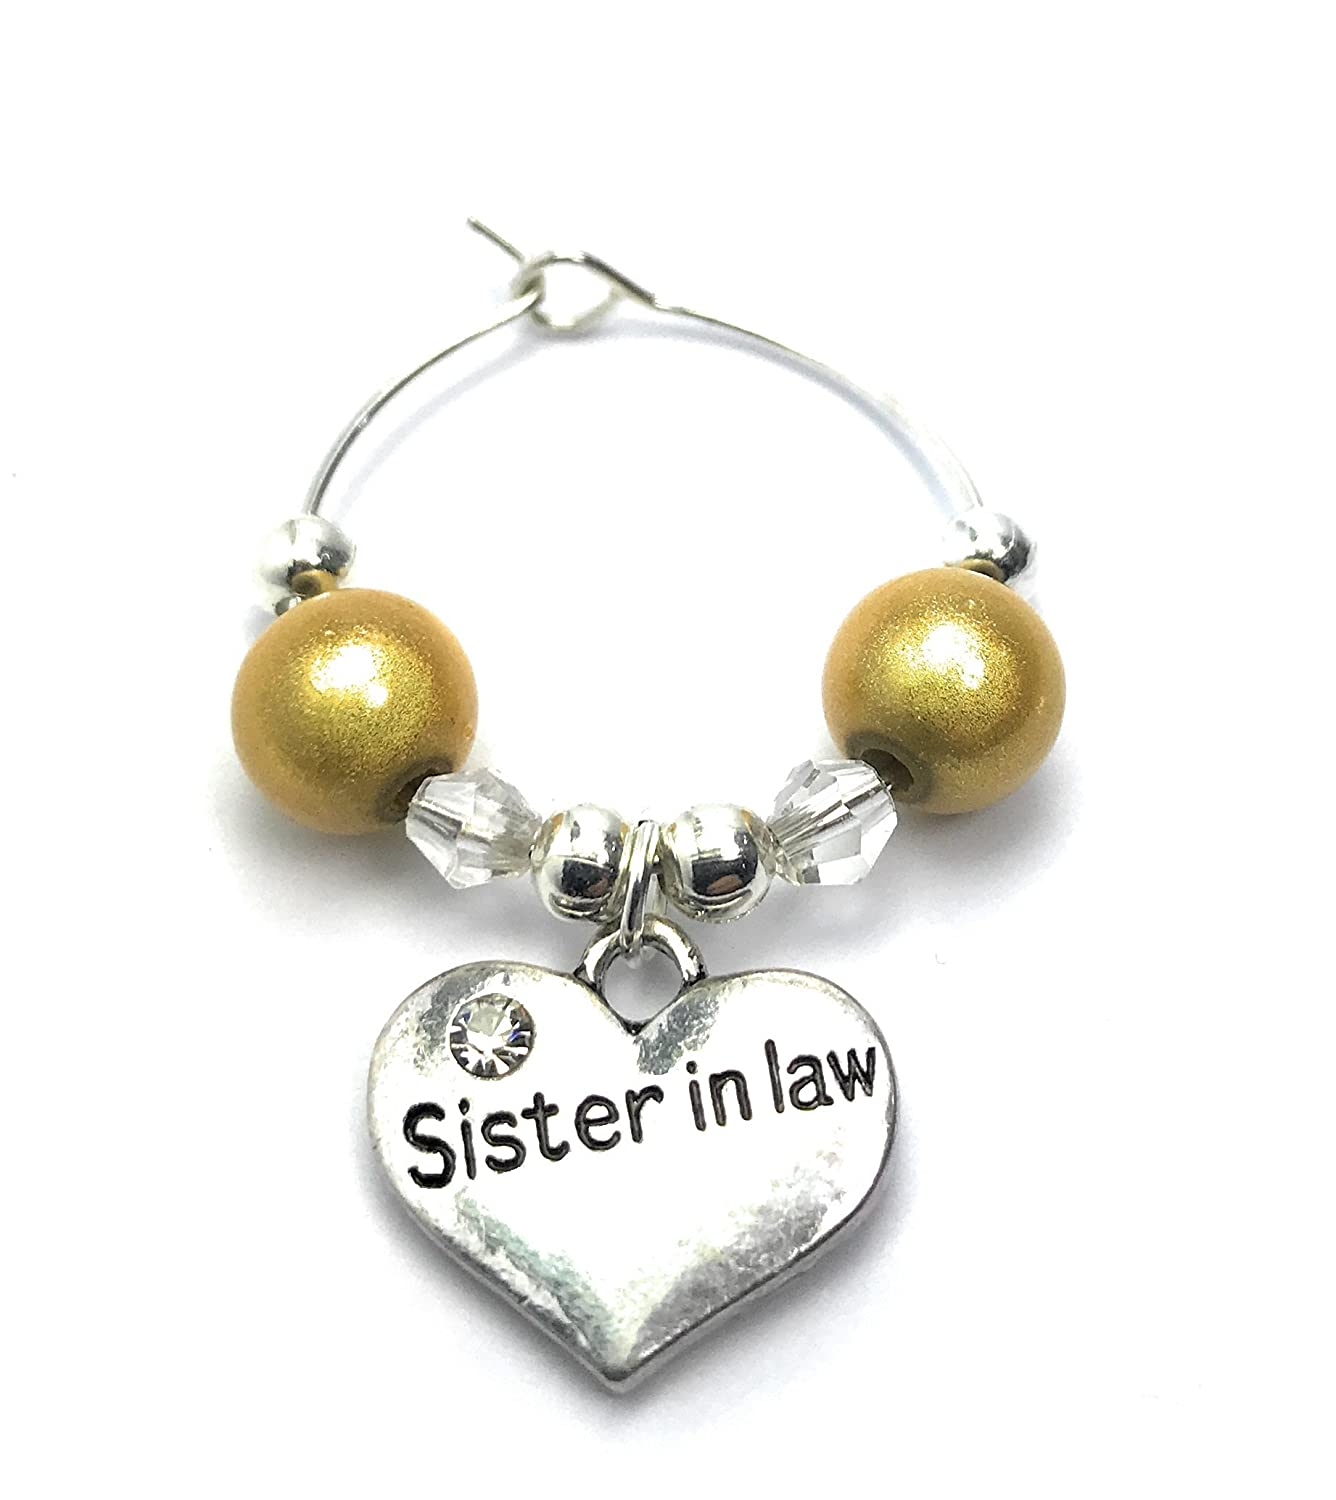 Sister in Law Wine Glass Charm with Gift Card Handmade by Libby's Market Place - From UK Seller Libby' s Market Place